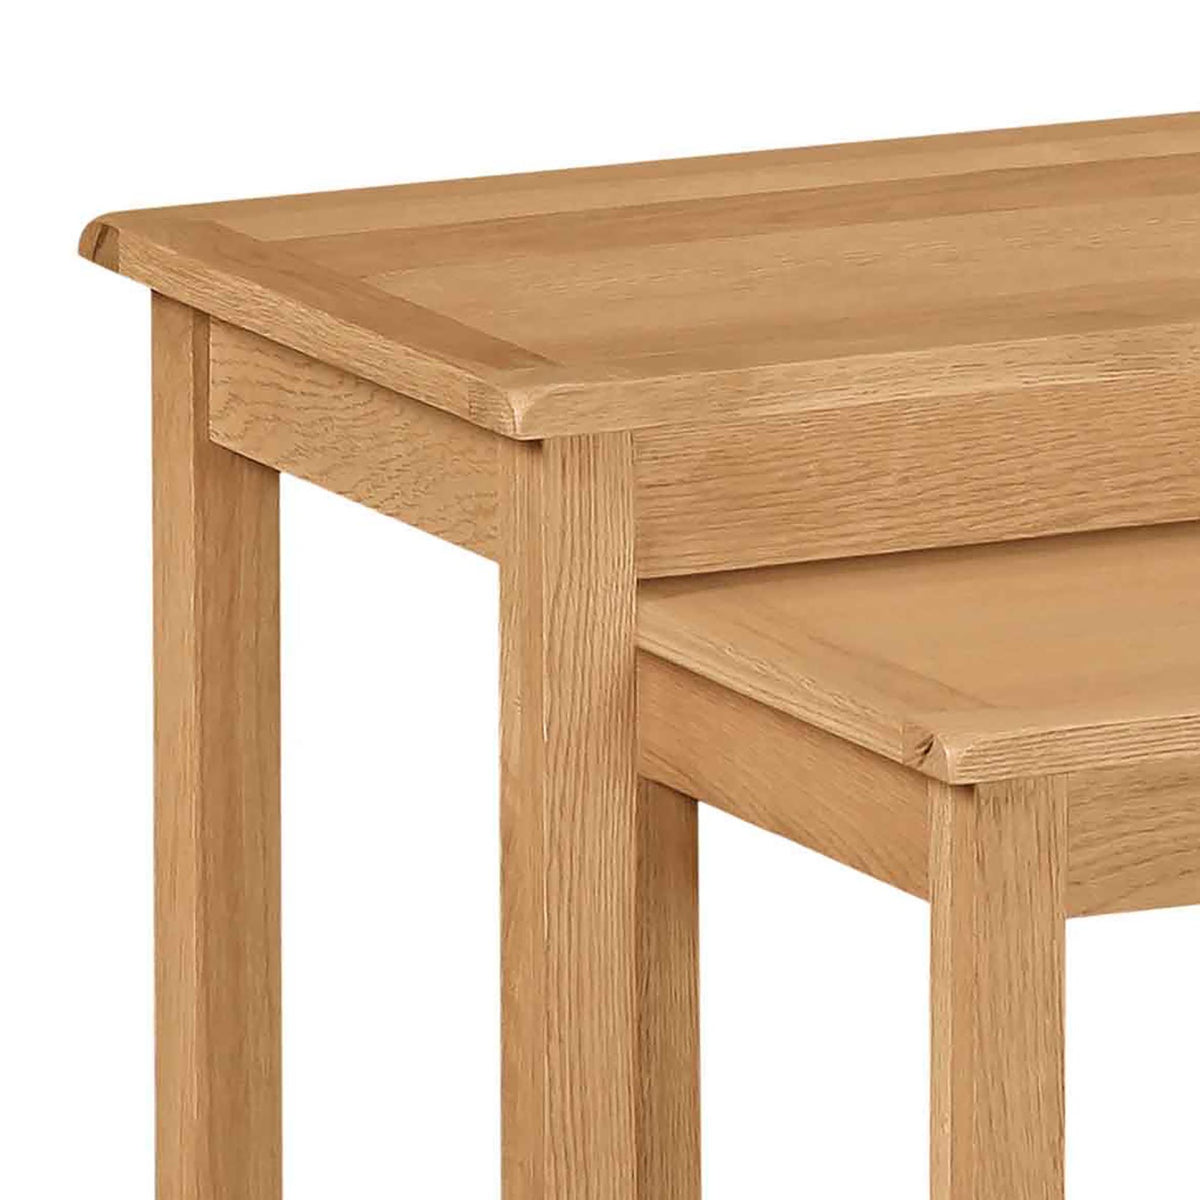 Cotswold Oak Nest of 2 Tables - Close up of Tops of Tables